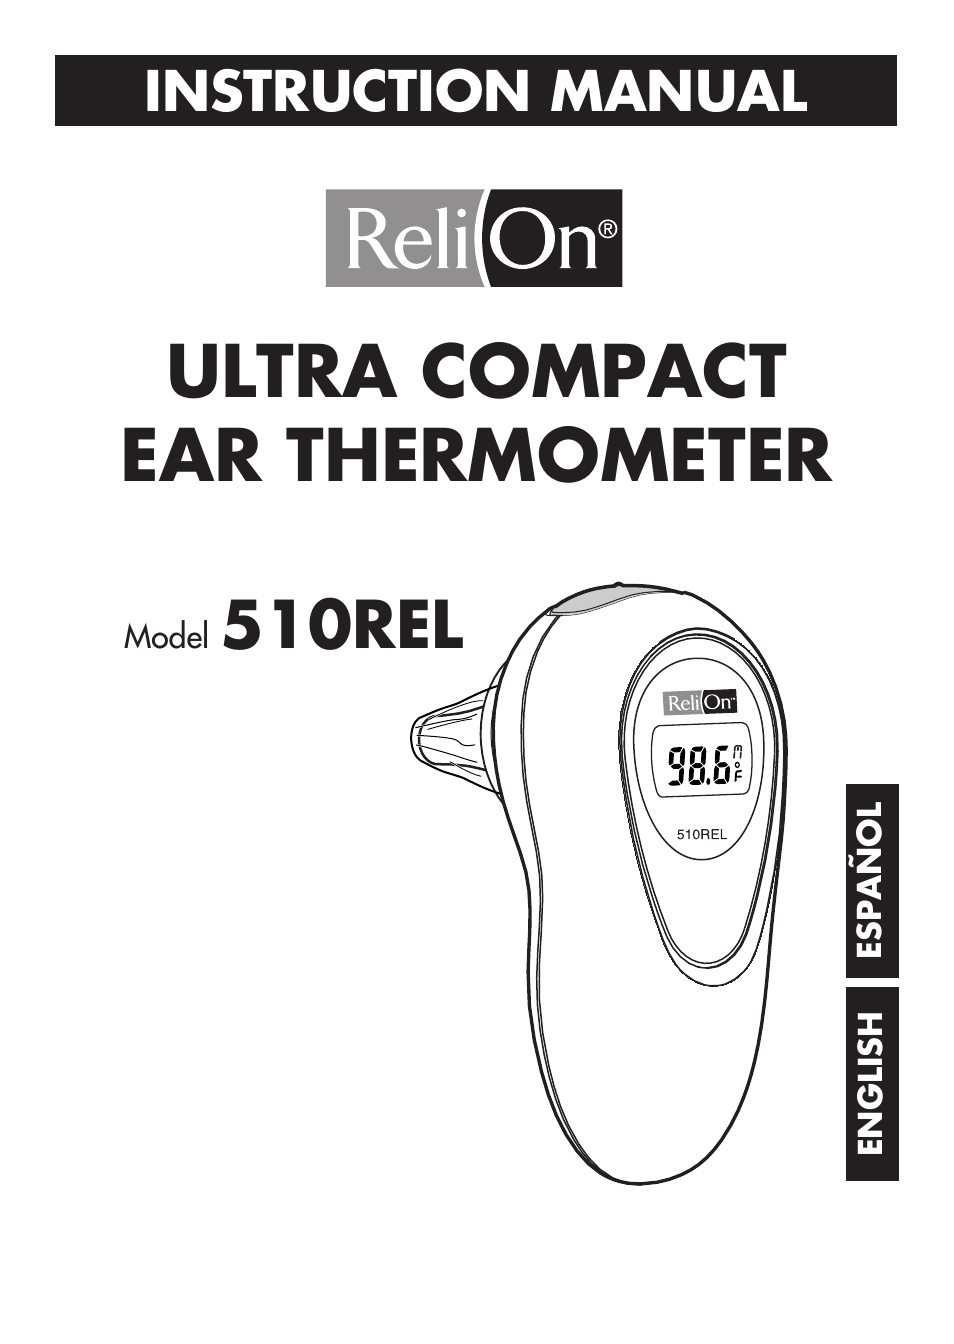 ReliOn Ultra COmpact Ear Thermometer 510REL User Manual